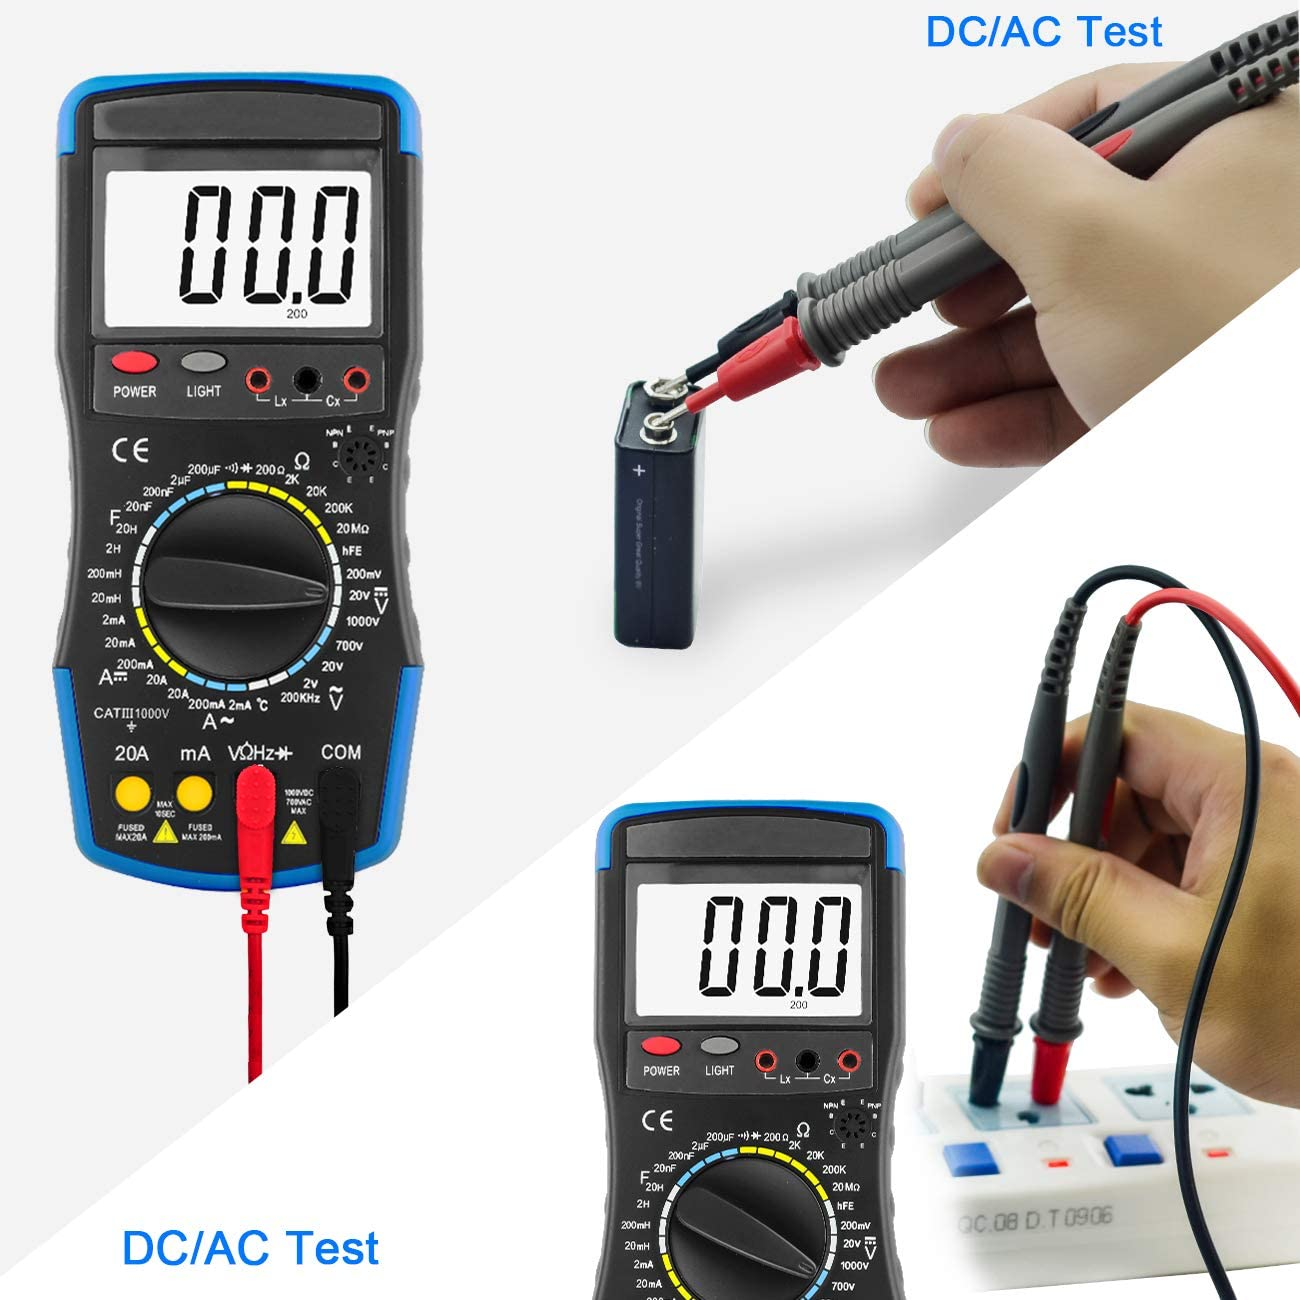 Resistance AC/&DC Current Voltmeter Temperature for electrical system Inductance Testing Capacitance Continuity ANNMETER AN-760C Digital Multimeter- Volt Ohm Amp DMM Tester Diode